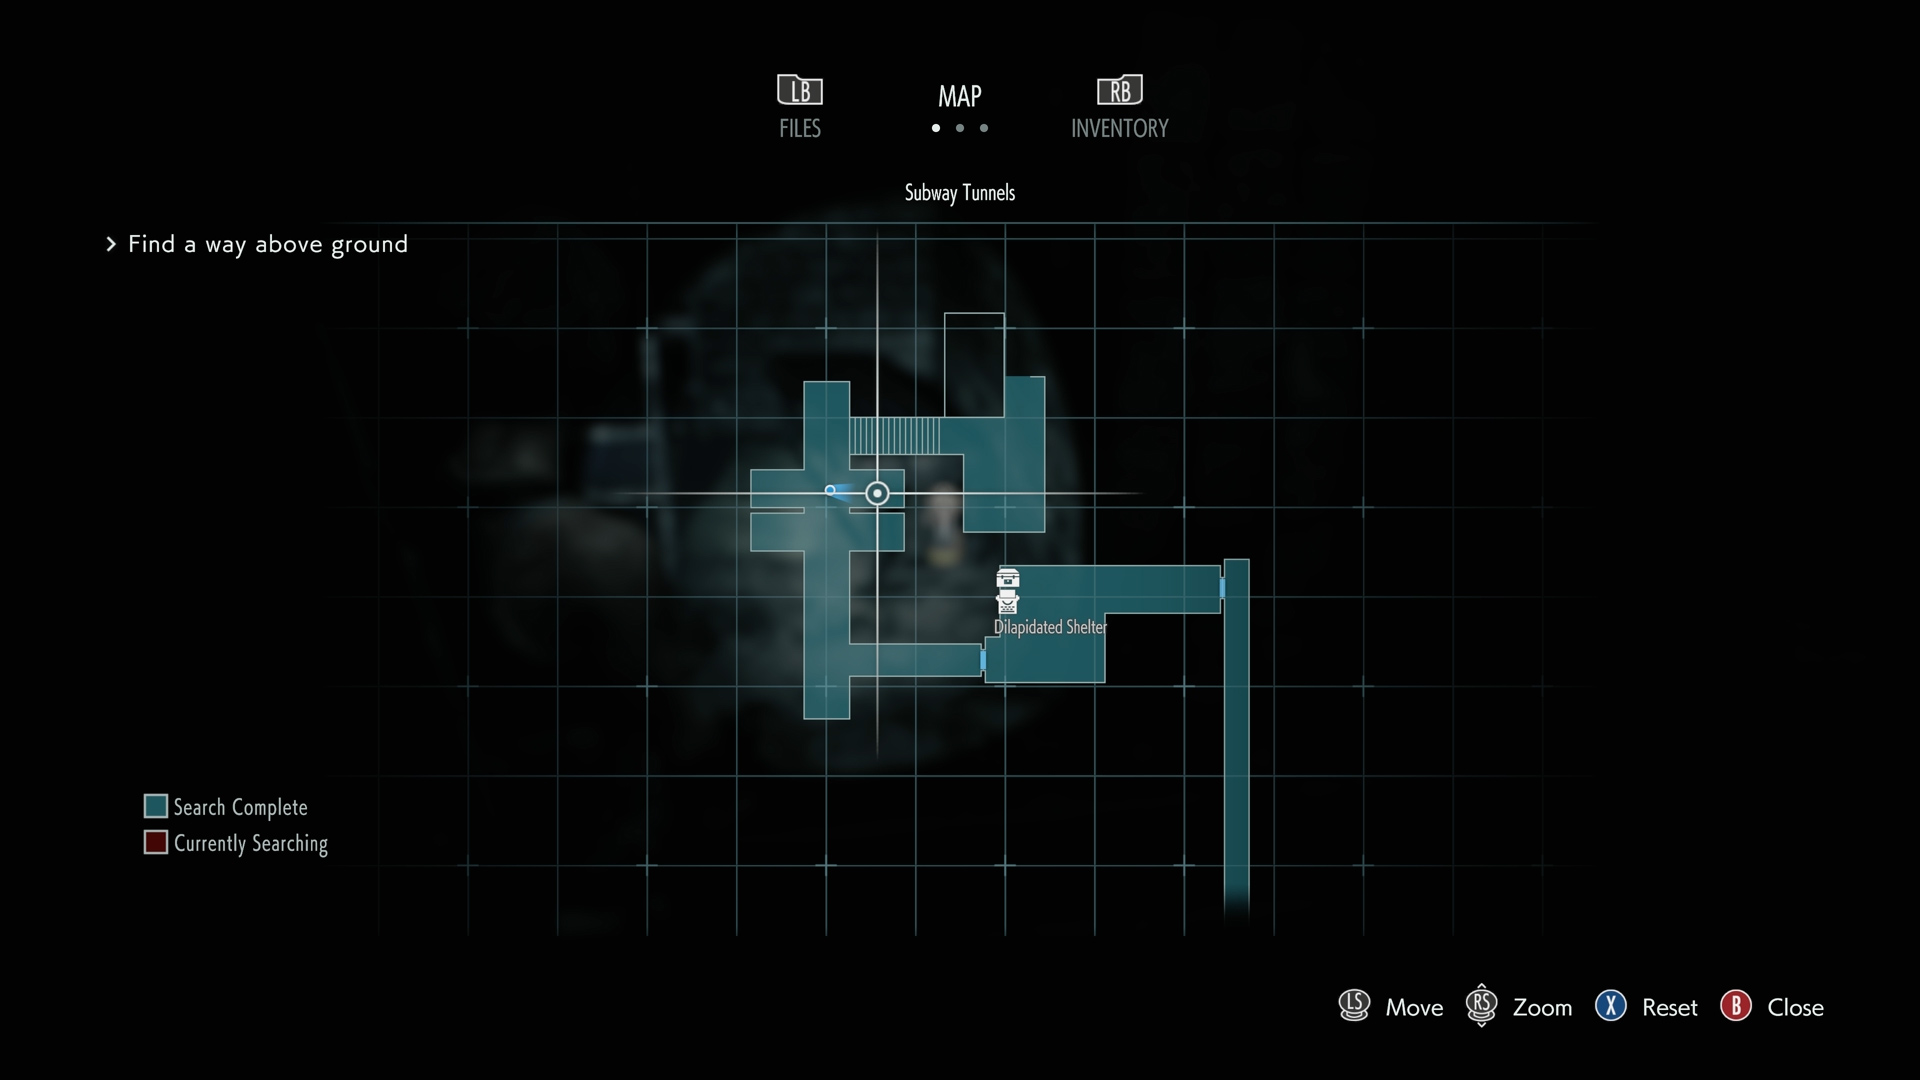 Resident Evil 3 Charlie Doll locations Subway Tunnels maps